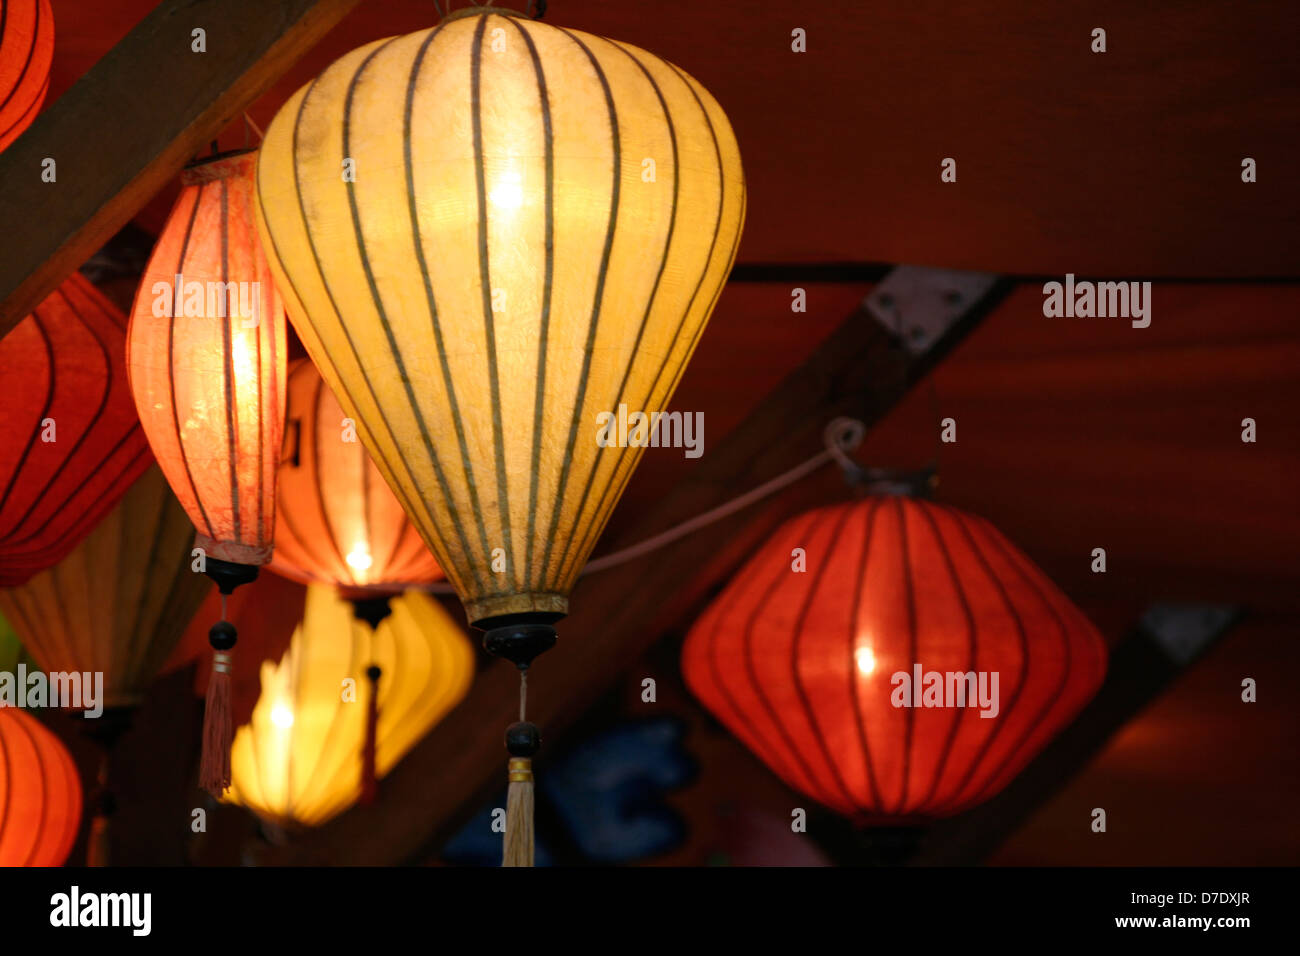 Lampion - Stock Image